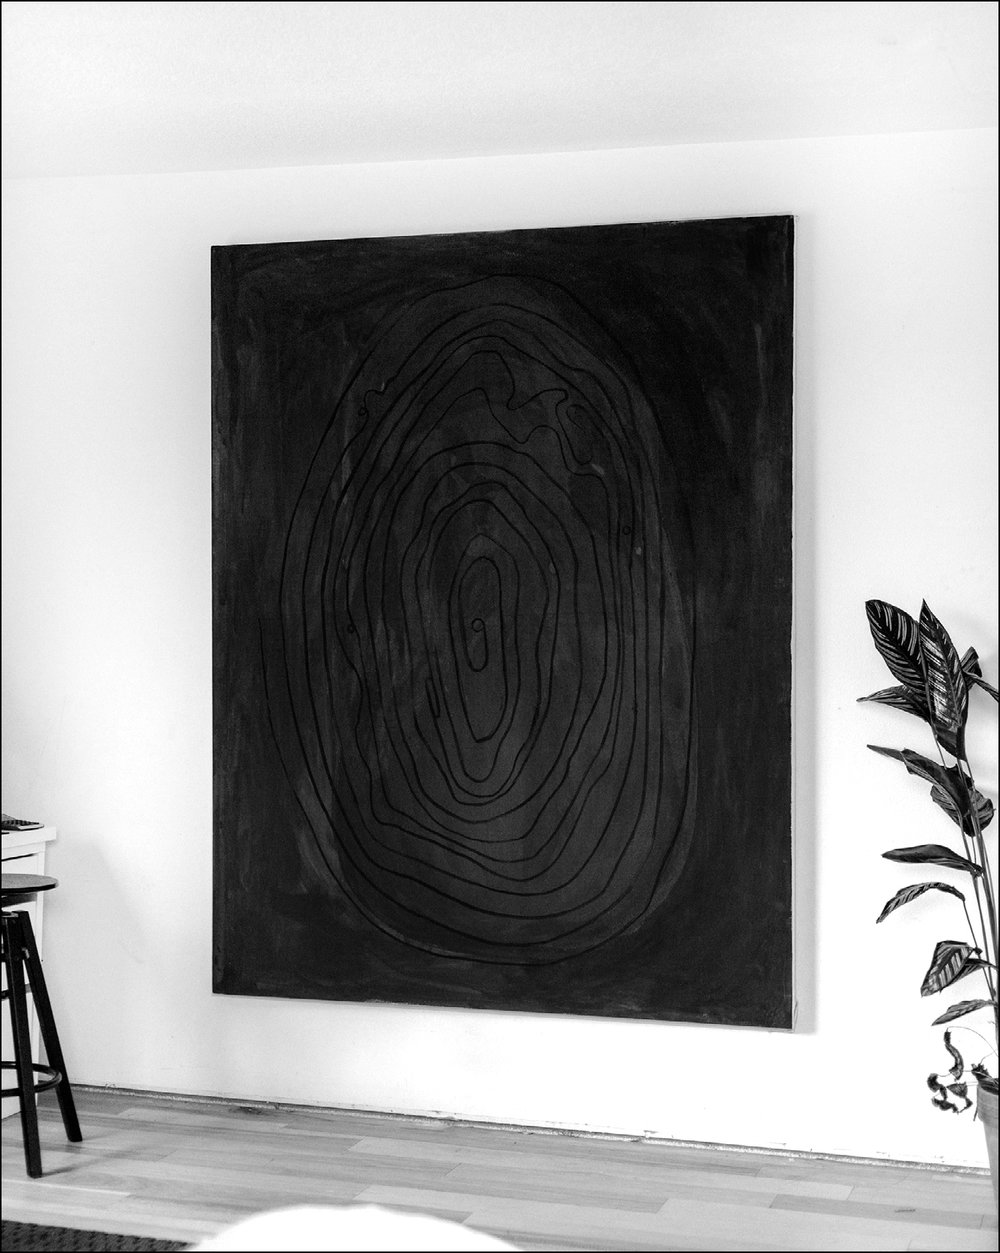 Void  - 2016 - Charcoal on Paint on Canvas - 60 x 78 Inches (152.4 x 198.1cm) — $8,000 USD